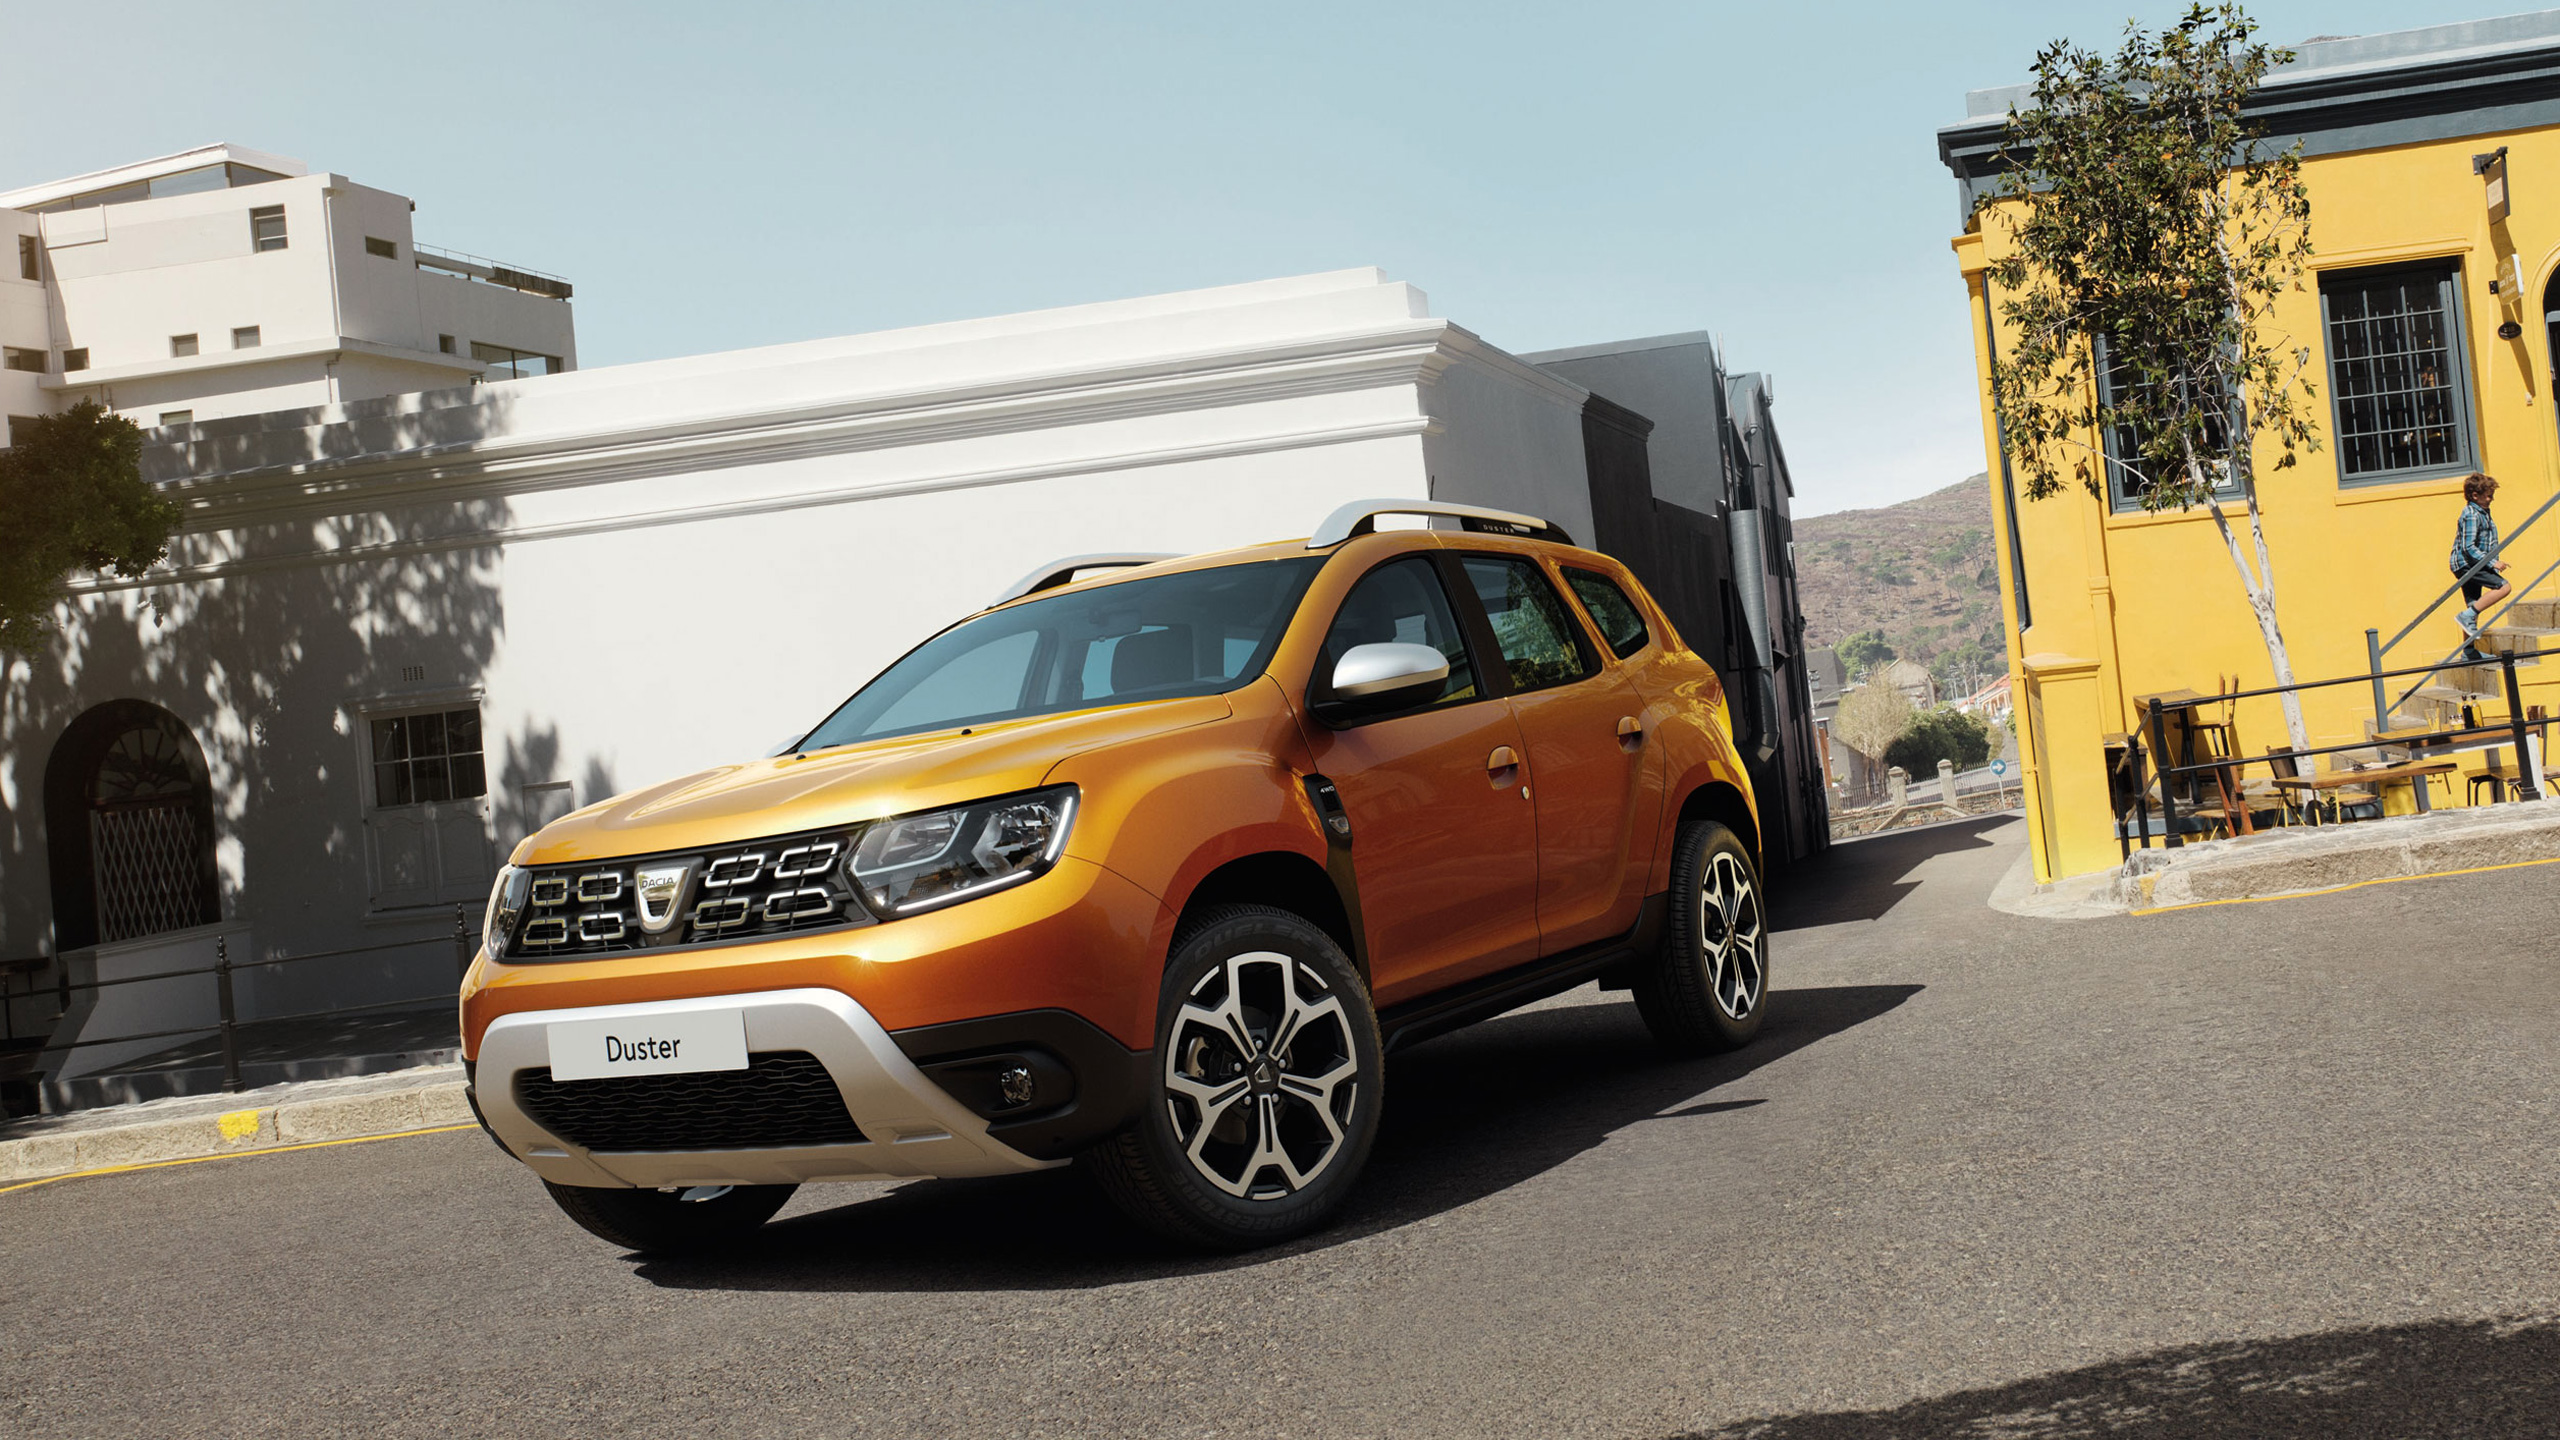 dacia-duster-hjd-ph1-exterior-lifestyle-002